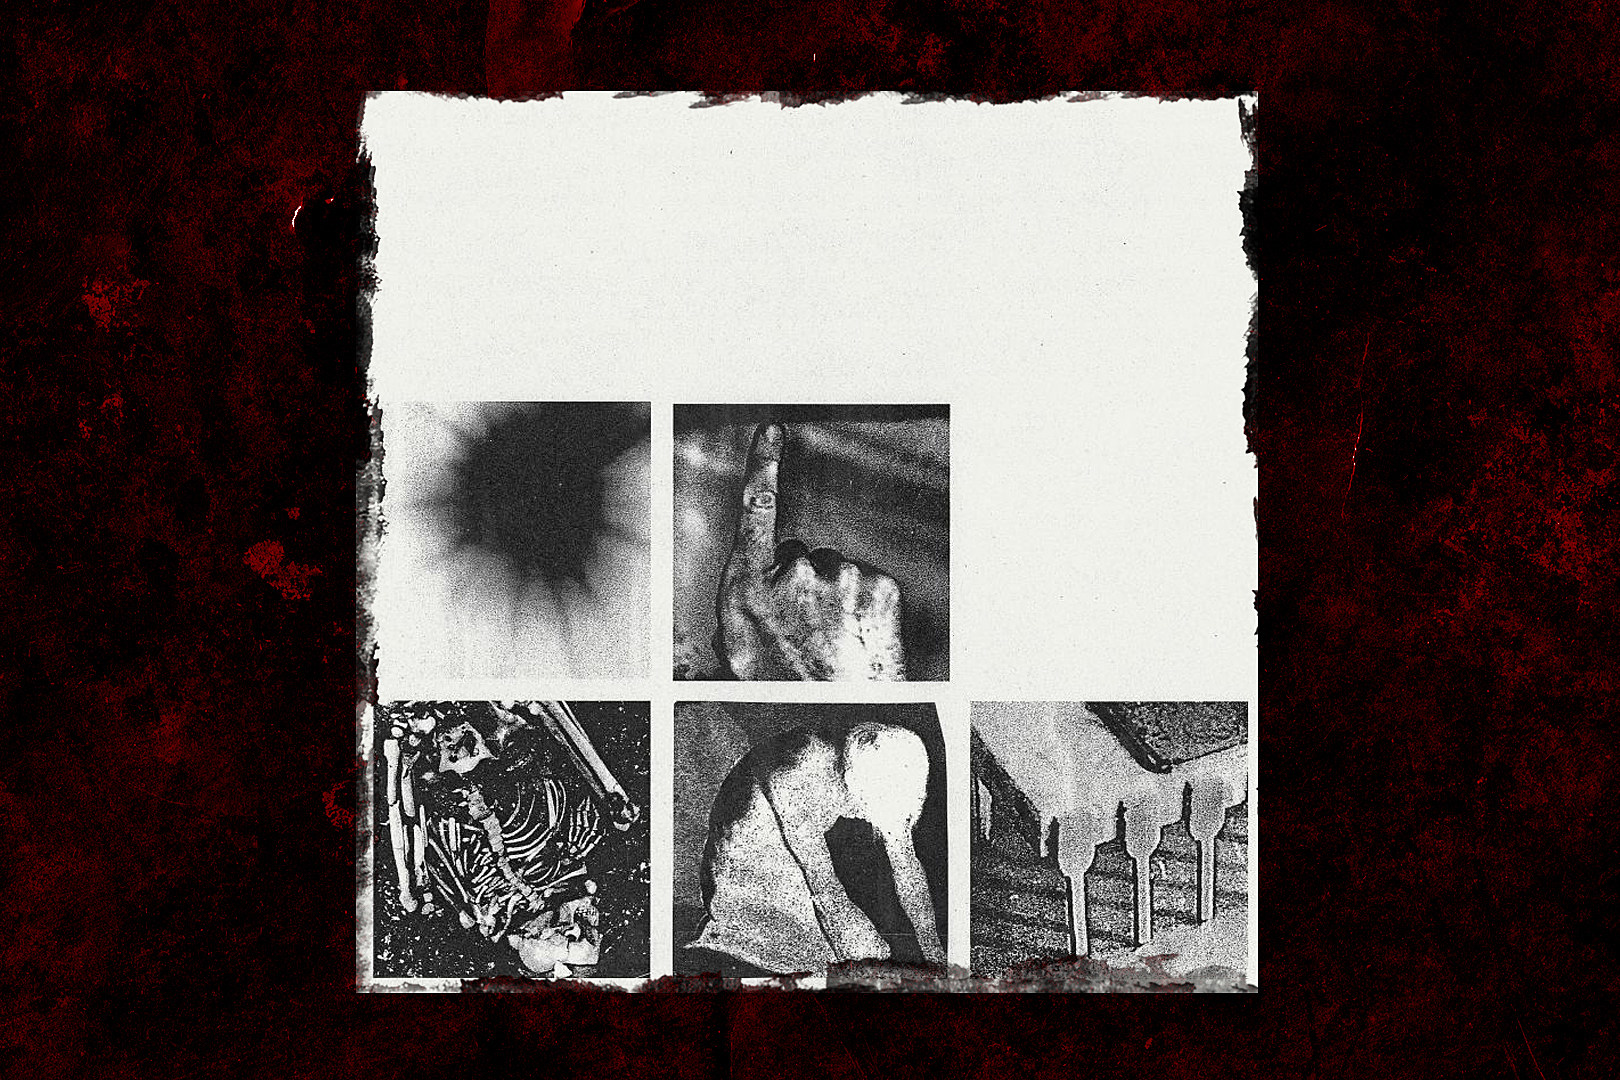 Nine Inch Nails \'Bad Witch\' Is Haunted by David Bowie | katsfm.com ...